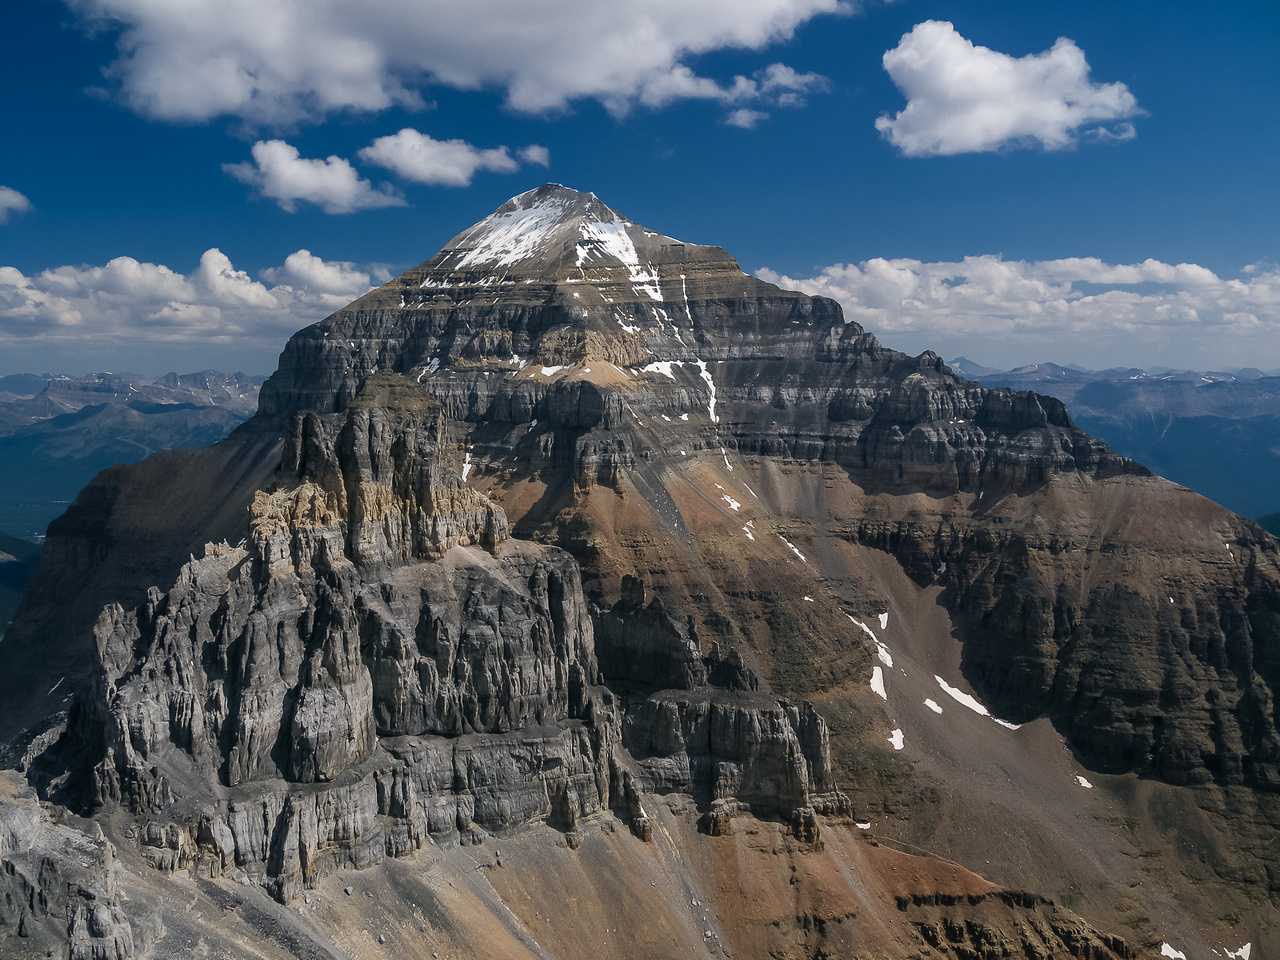 Mount Temple is still one of my favorite peaks of all time.